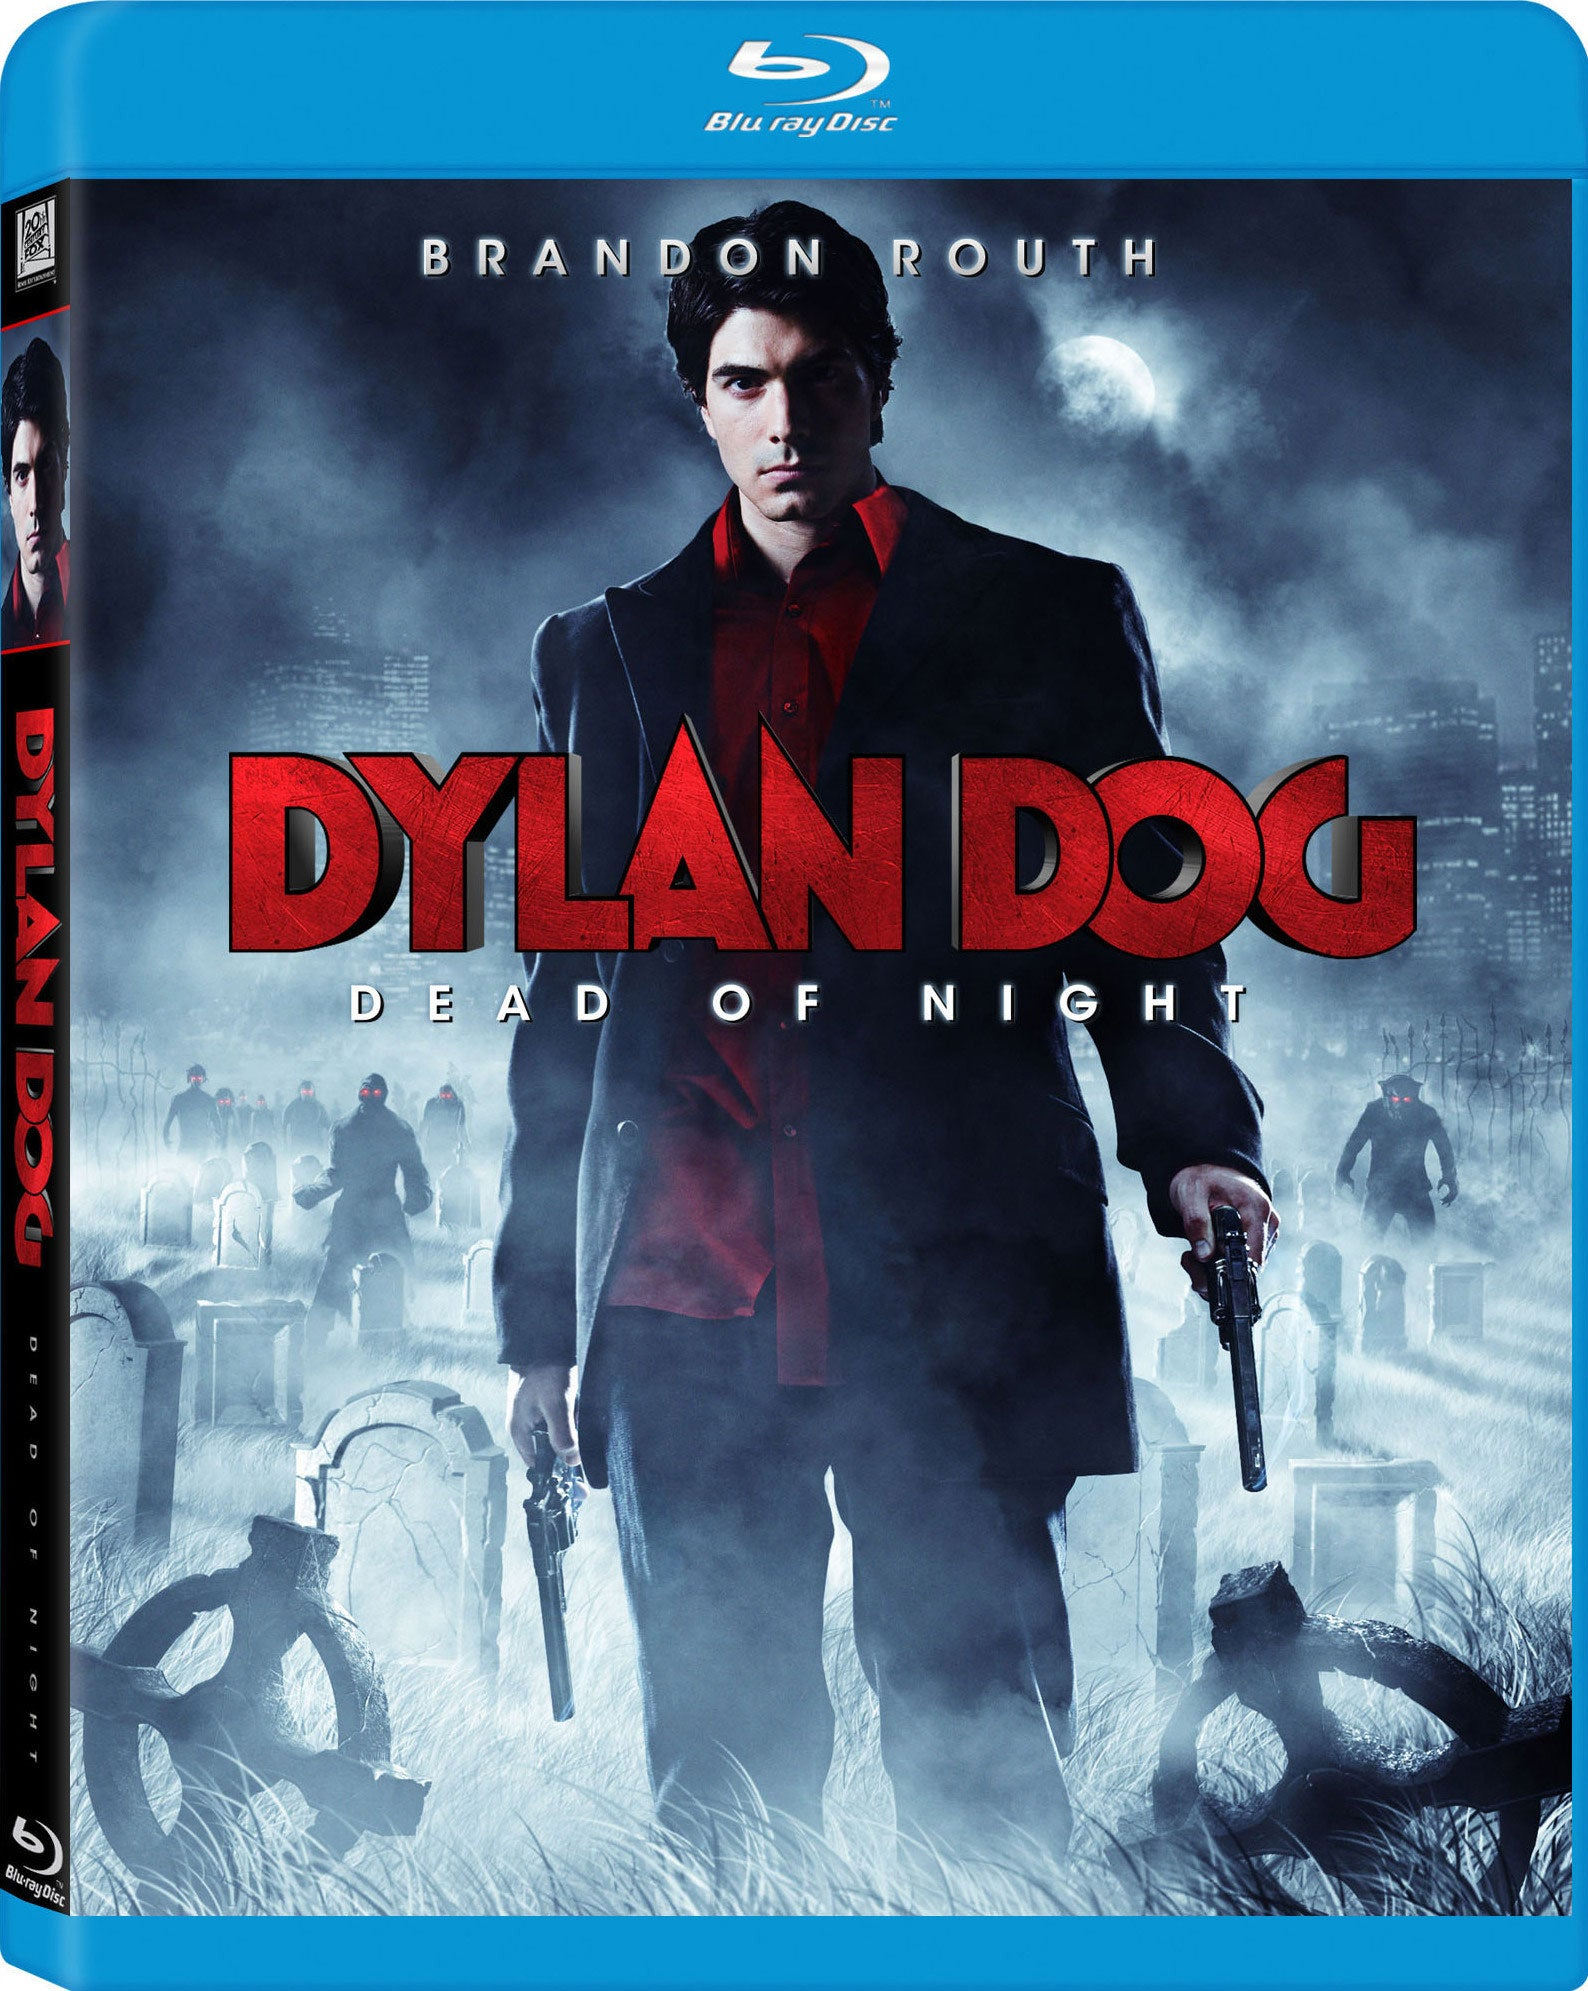 Dylan Dog: Dead of Night (Blu-ray Disc)